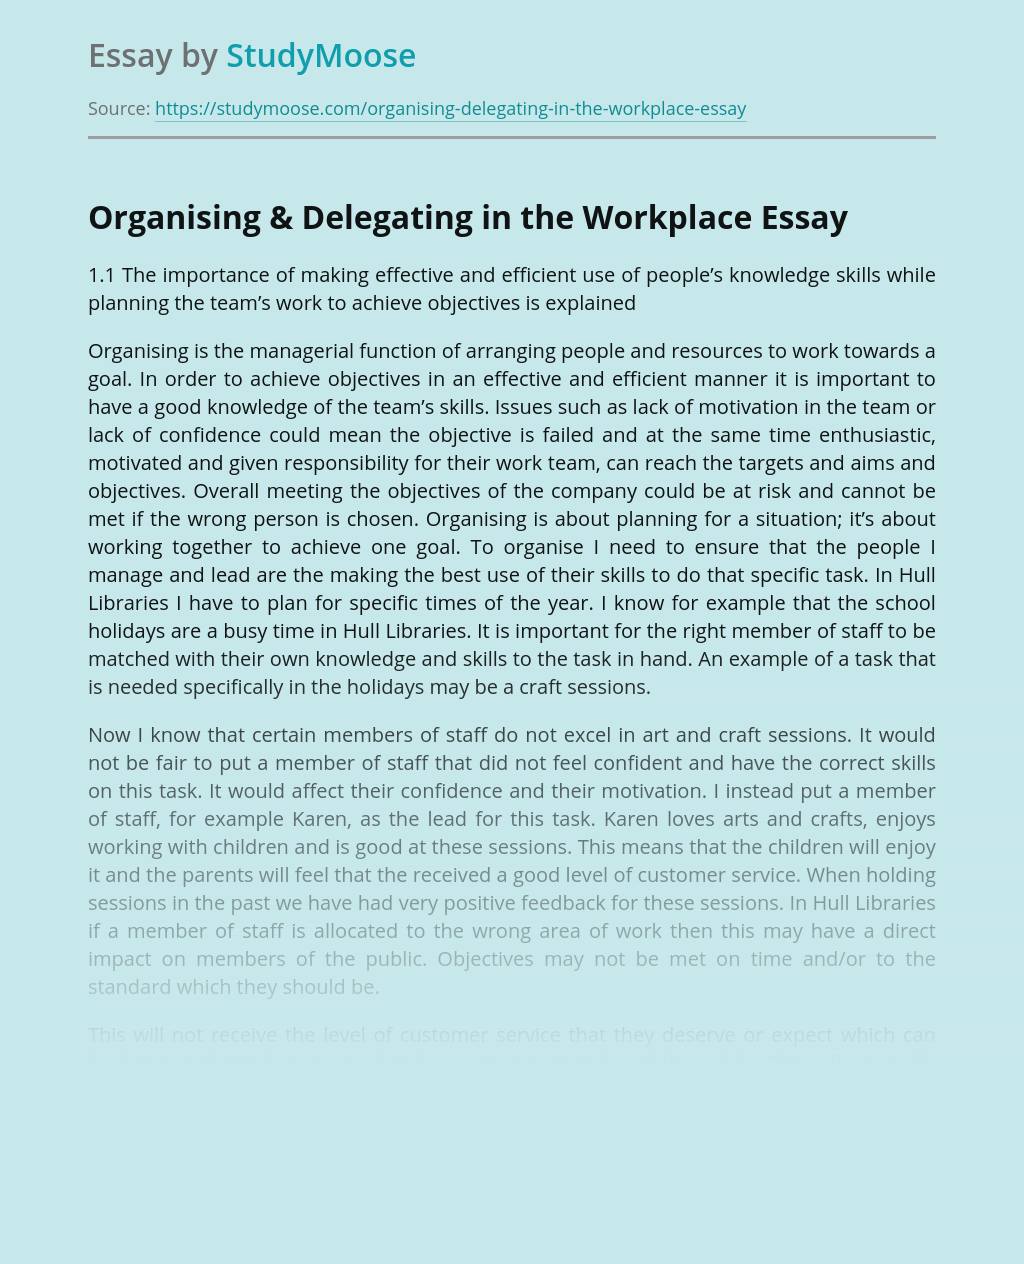 Organising & Delegating in the Workplace